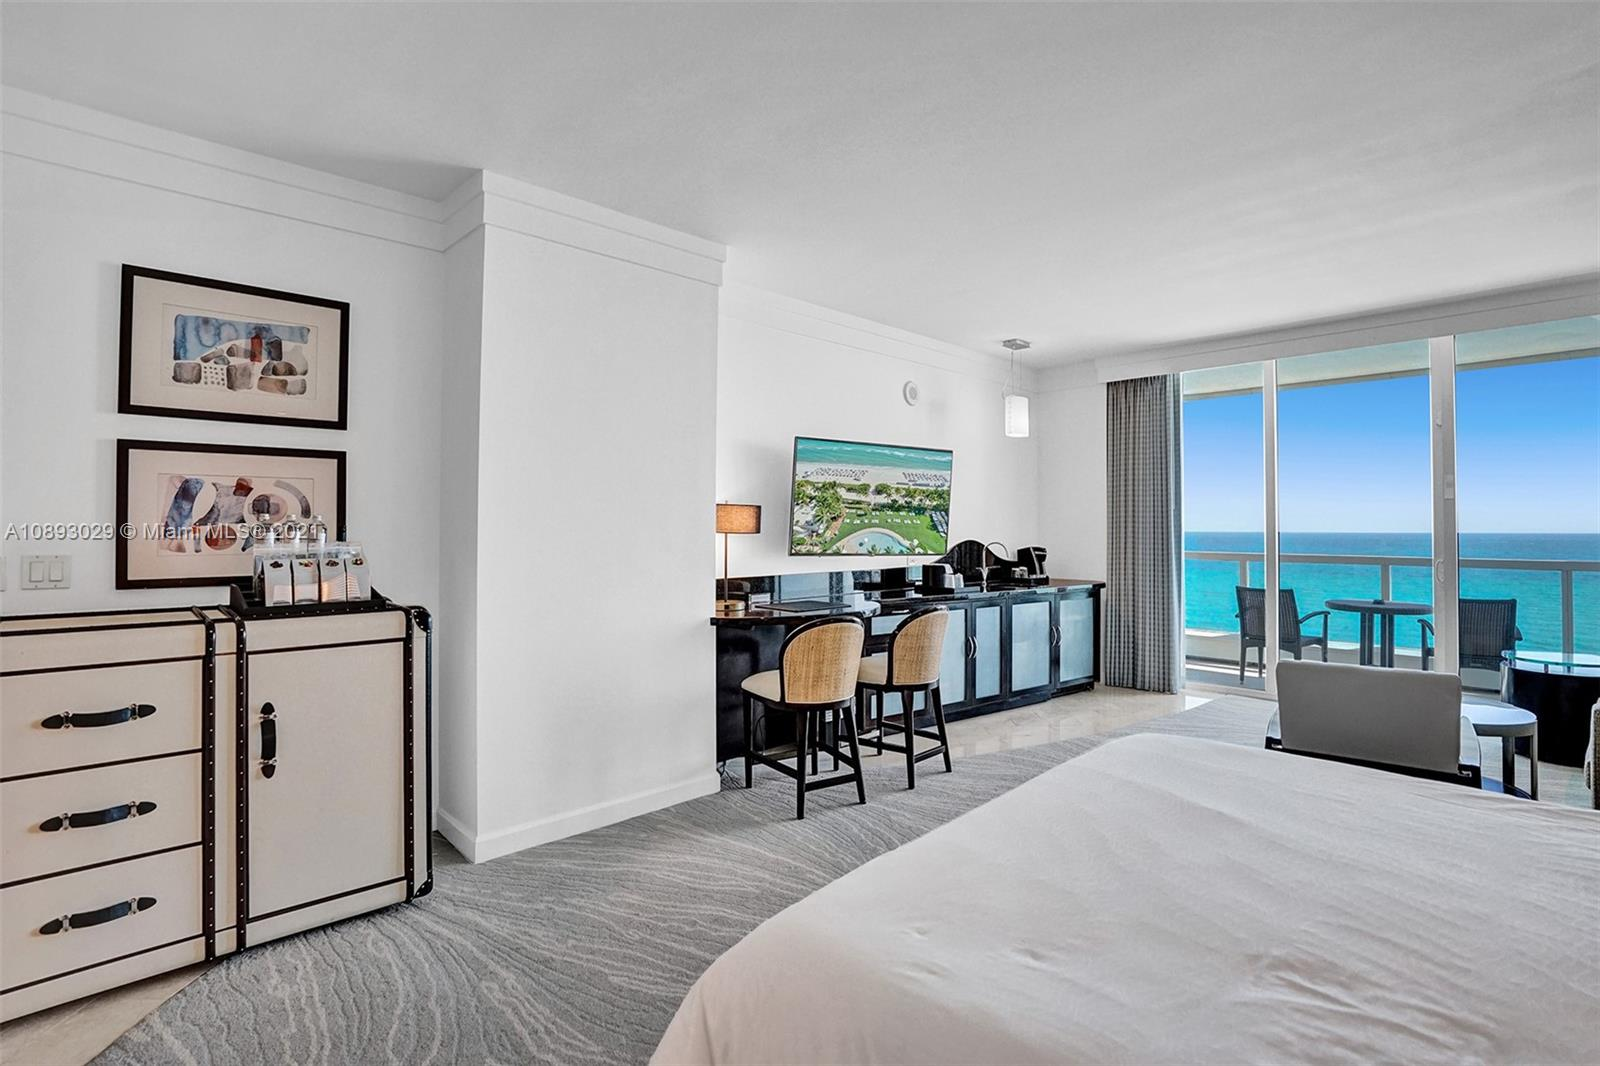 Beautiful Jr Suite w/ direct ocean & pool views at The Fontainebleau III. Enjoy full service, vacation-style living in a furnished turnkey unit with king bed, sleeper sofa & more. Enroll in hotel rental program & receive income while away! The Fontainebleau Resort offers luxury amenities on 22 oceanfront acres including award-winning restaurants, LIV night club, Lapis spa & state-of-the-art fitness center. Maintenance includes: AC, local calls, electricity, valet + daily free breakfast in the owners lounge